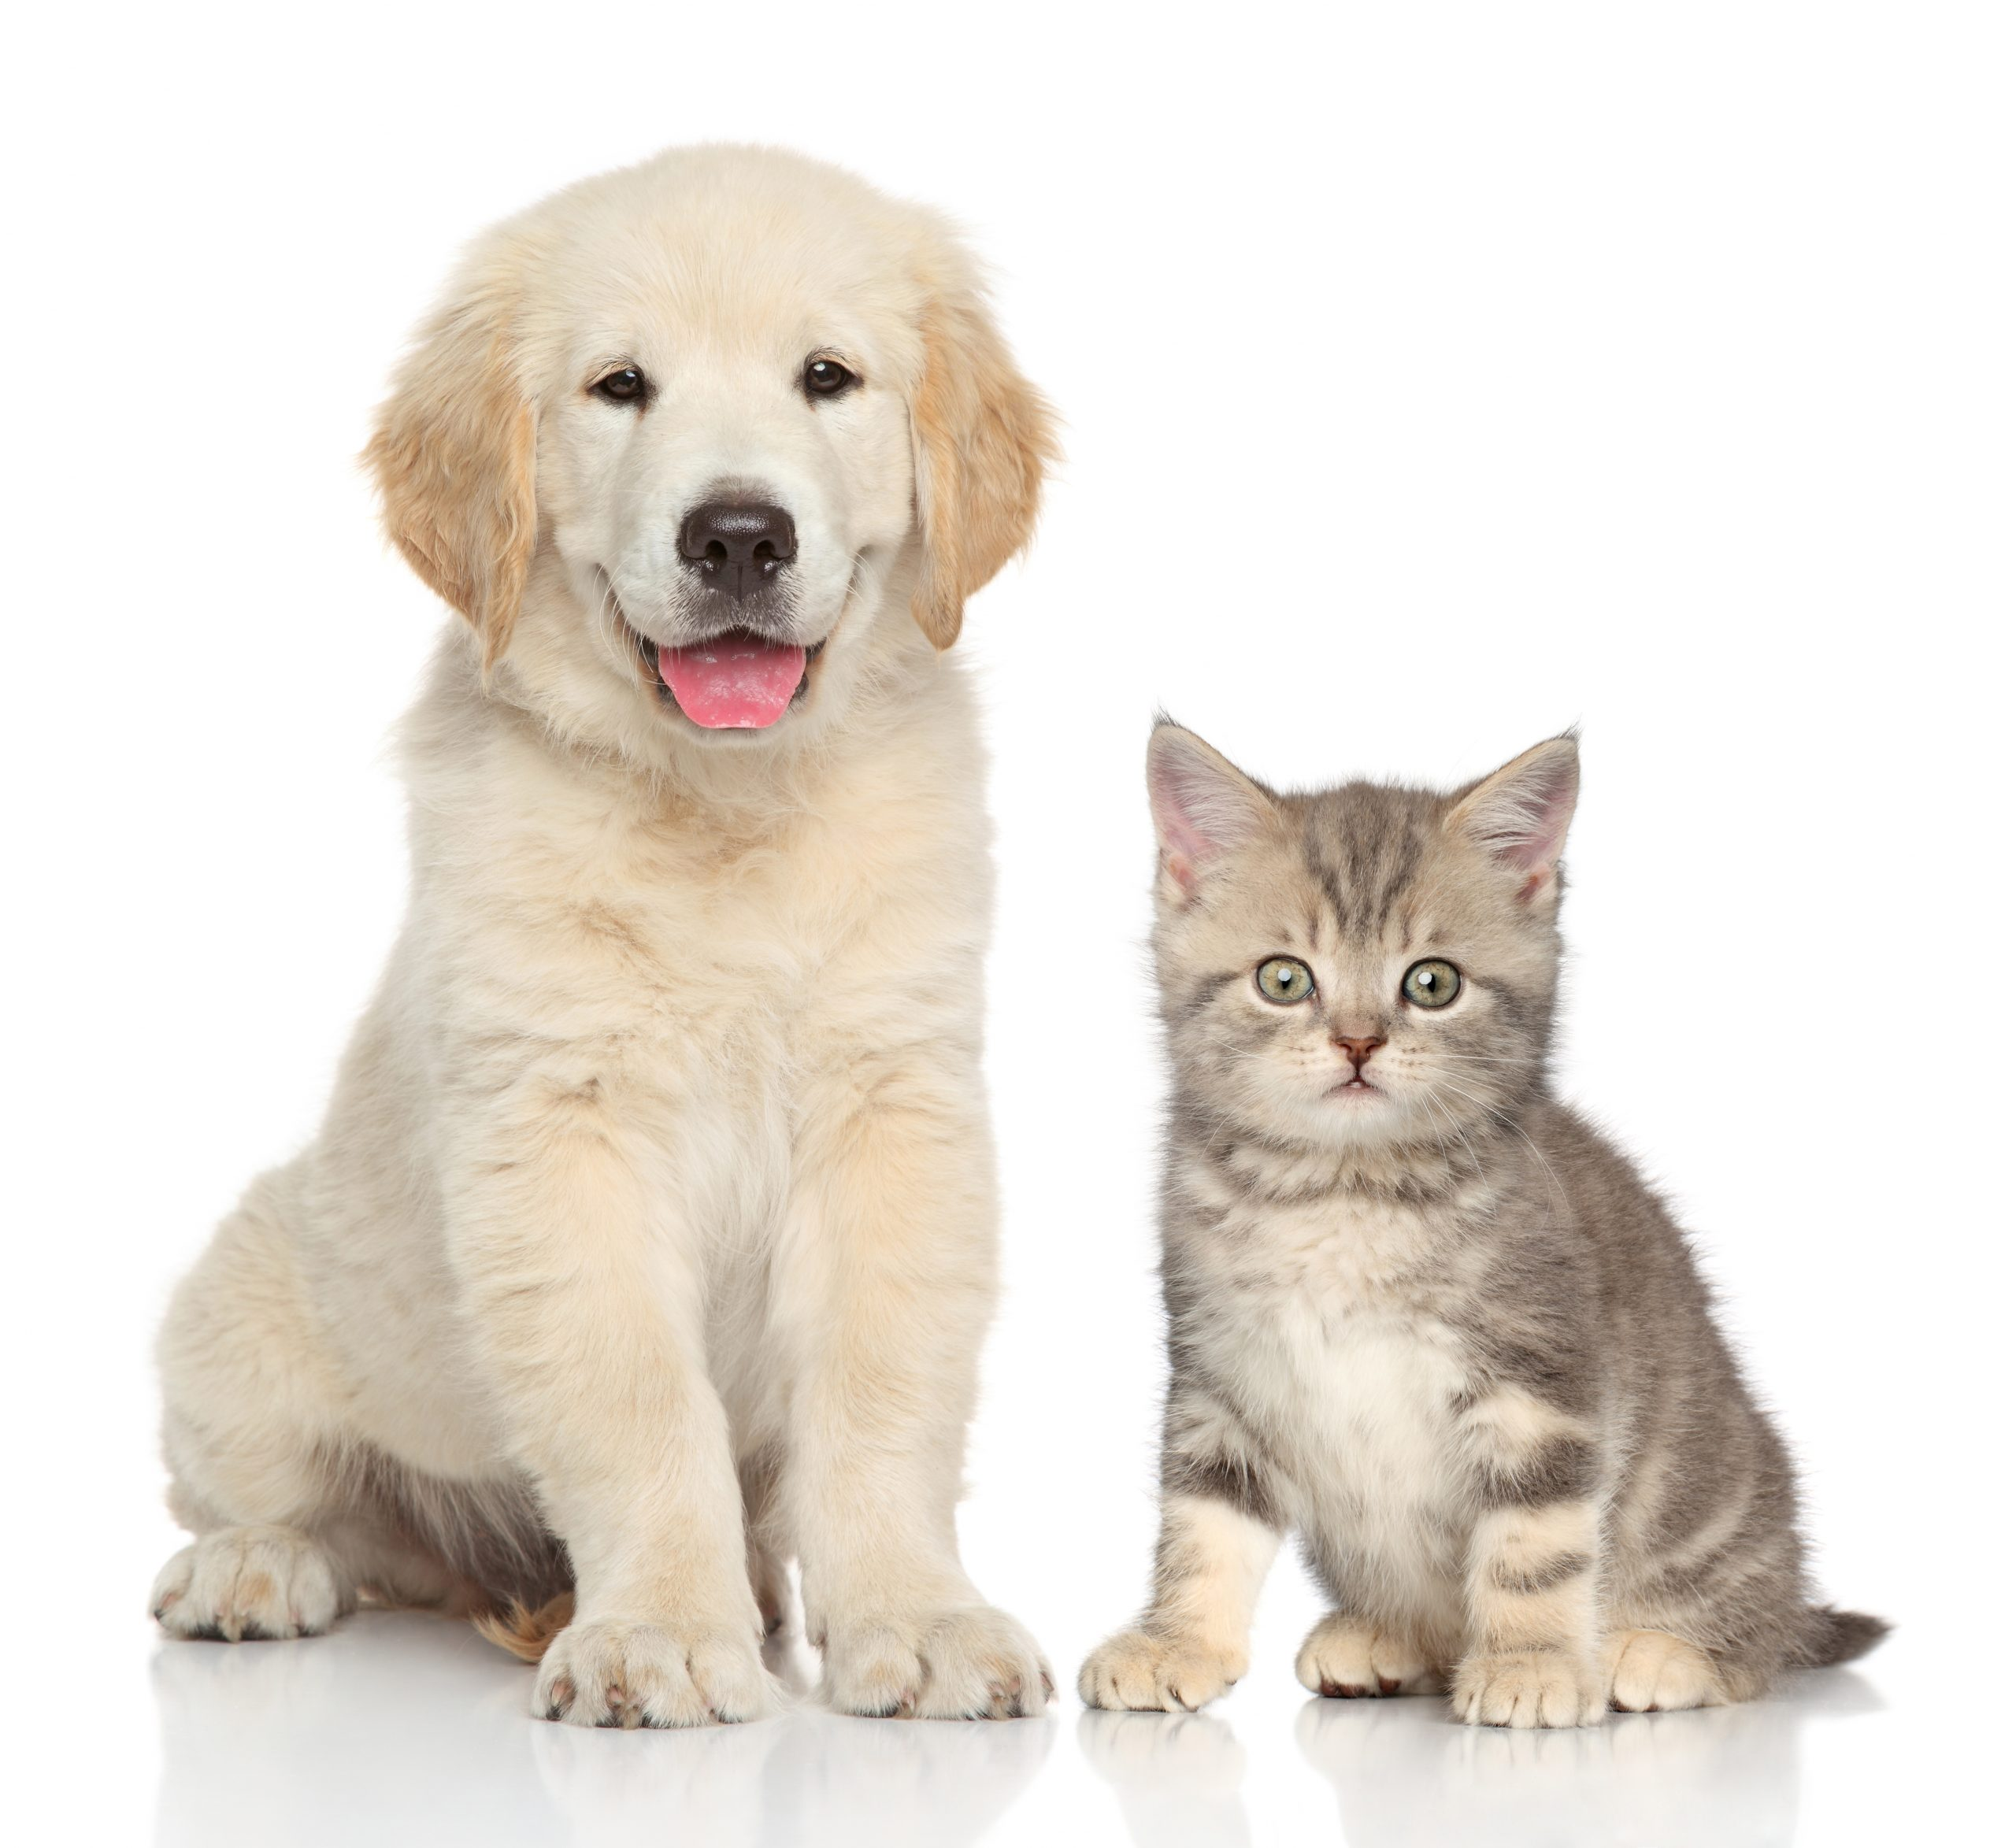 cream puppy and kitten pose for camera